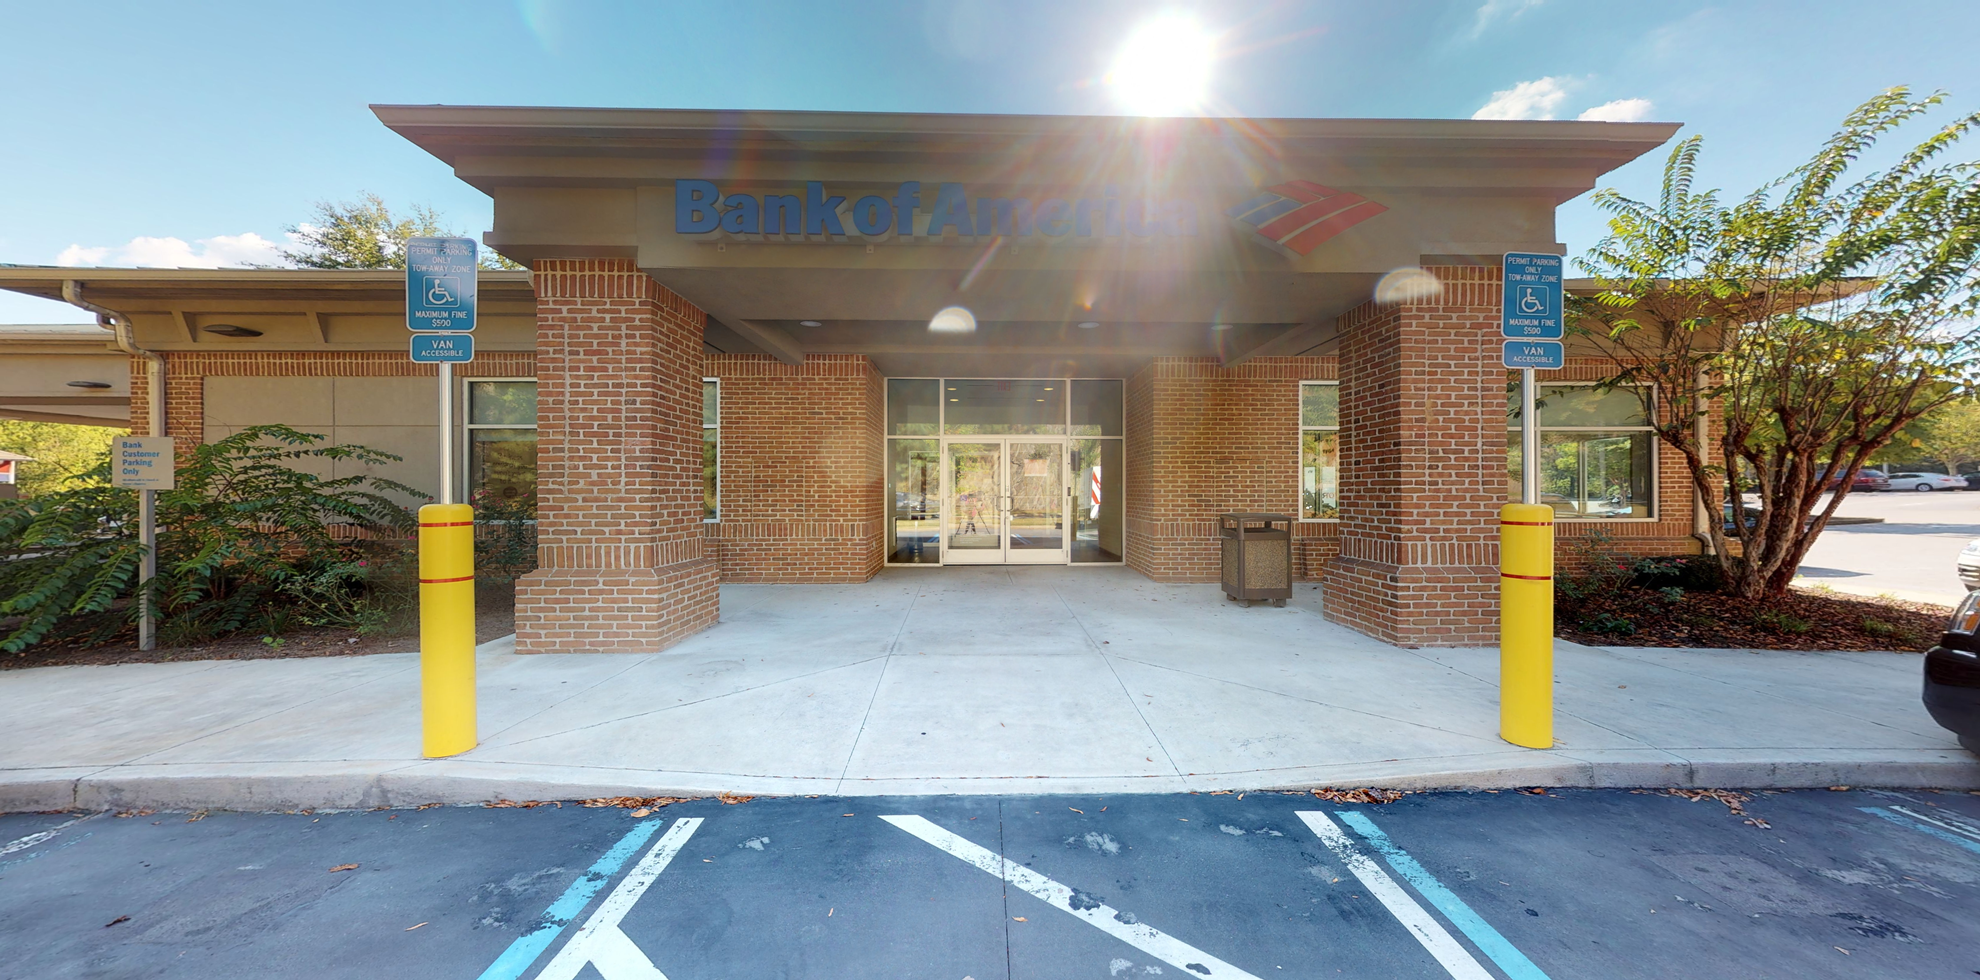 Bank of America financial center with drive-thru ATM | 1550 Towne Lake Pkwy, Woodstock, GA 30189